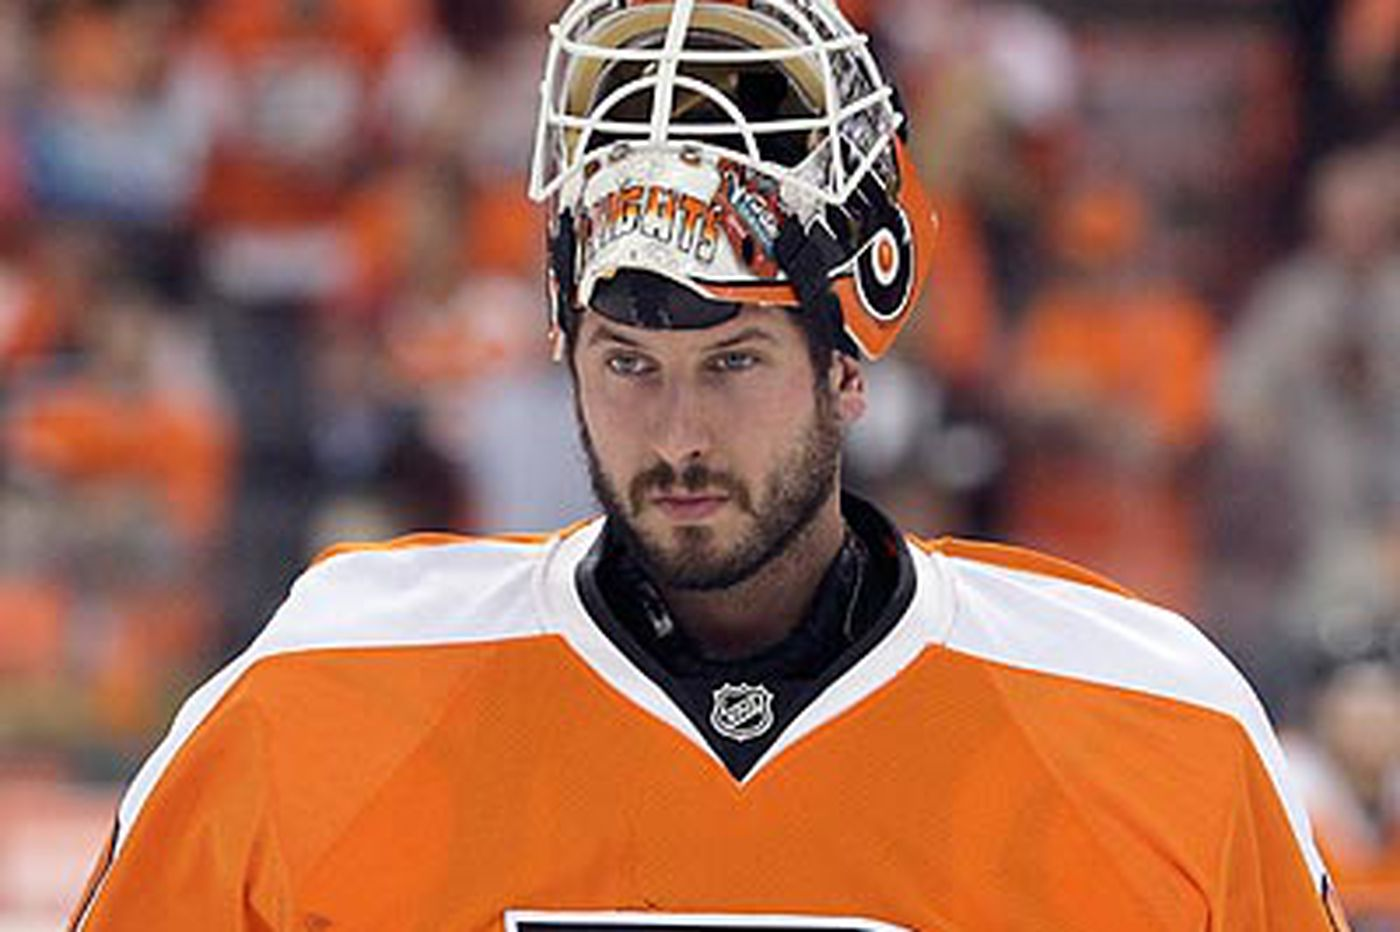 Flyers Notes: Leighton eager to make amends